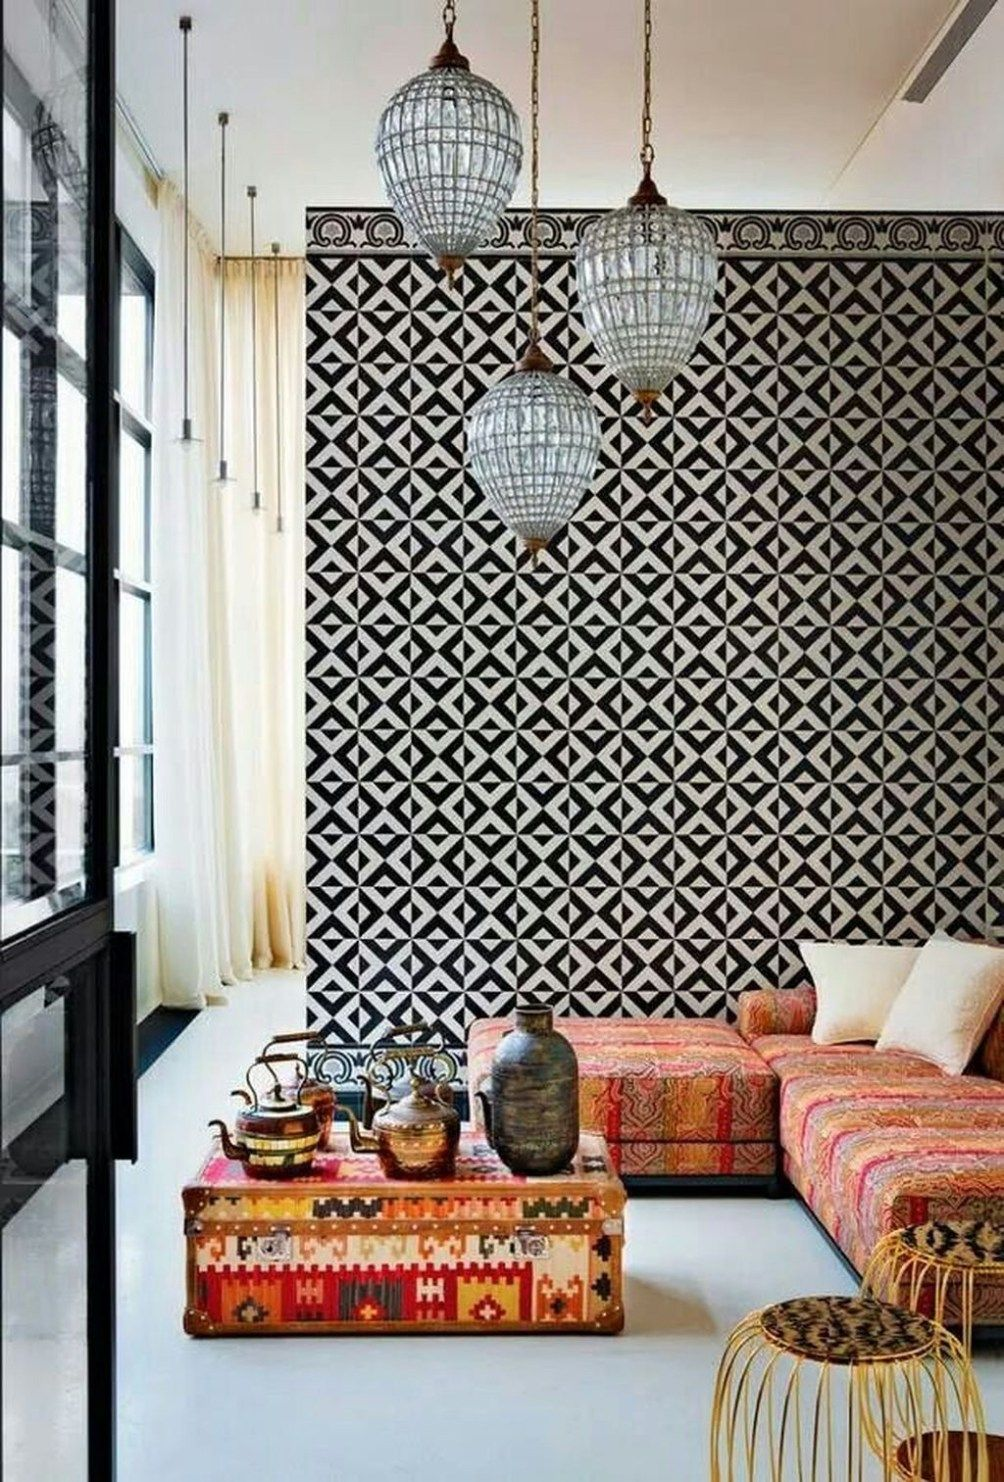 Amazing texture and pattern ideas for interior design walls and